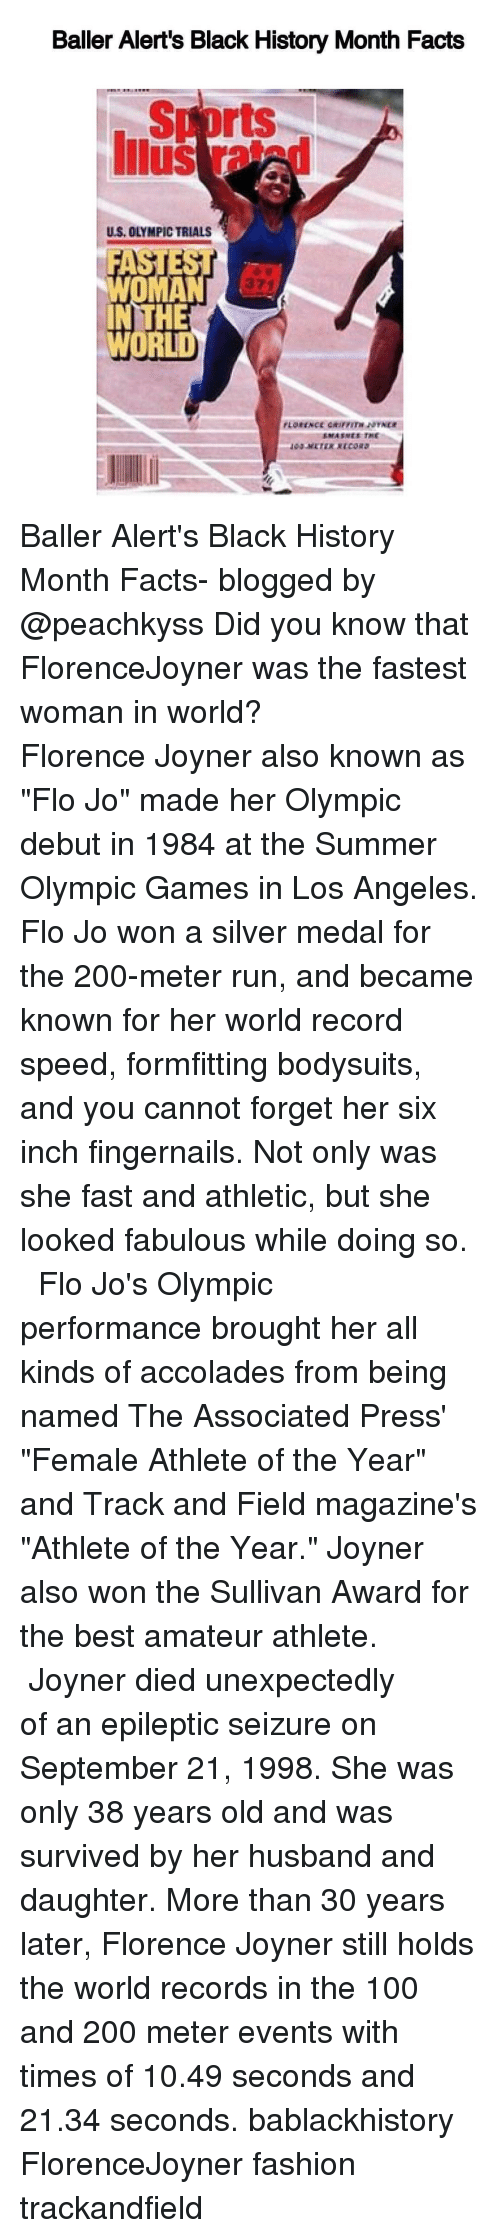 "Baller Alert, Memes, and Flo: Baller Alert's Black History Month Facts  rts  US, OLYMPICTRIALS  HE  WORLD Baller Alert's Black History Month Facts- blogged by @peachkyss Did you know that FlorenceJoyner was the fastest woman in world? ⠀⠀⠀⠀⠀⠀⠀⠀⠀ ⠀⠀⠀⠀⠀⠀⠀⠀⠀ Florence Joyner also known as ""Flo Jo"" made her Olympic debut in 1984 at the Summer Olympic Games in Los Angeles. Flo Jo won a silver medal for the 200-meter run, and became known for her world record speed, formfitting bodysuits, and you cannot forget her six inch fingernails. Not only was she fast and athletic, but she looked fabulous while doing so. ⠀⠀⠀⠀⠀⠀⠀⠀⠀ ⠀⠀⠀⠀⠀⠀⠀⠀⠀ Flo Jo's Olympic performance brought her all kinds of accolades from being named The Associated Press' ""Female Athlete of the Year"" and Track and Field magazine's ""Athlete of the Year."" Joyner also won the Sullivan Award for the best amateur athlete. ⠀⠀⠀⠀⠀⠀⠀⠀⠀ ⠀⠀⠀⠀⠀⠀⠀⠀⠀ Joyner died unexpectedly of an epileptic seizure on September 21, 1998. She was only 38 years old and was survived by her husband and daughter. More than 30 years later, Florence Joyner still holds the world records in the 100 and 200 meter events with times of 10.49 seconds and 21.34 seconds. bablackhistory FlorenceJoyner fashion trackandfield"